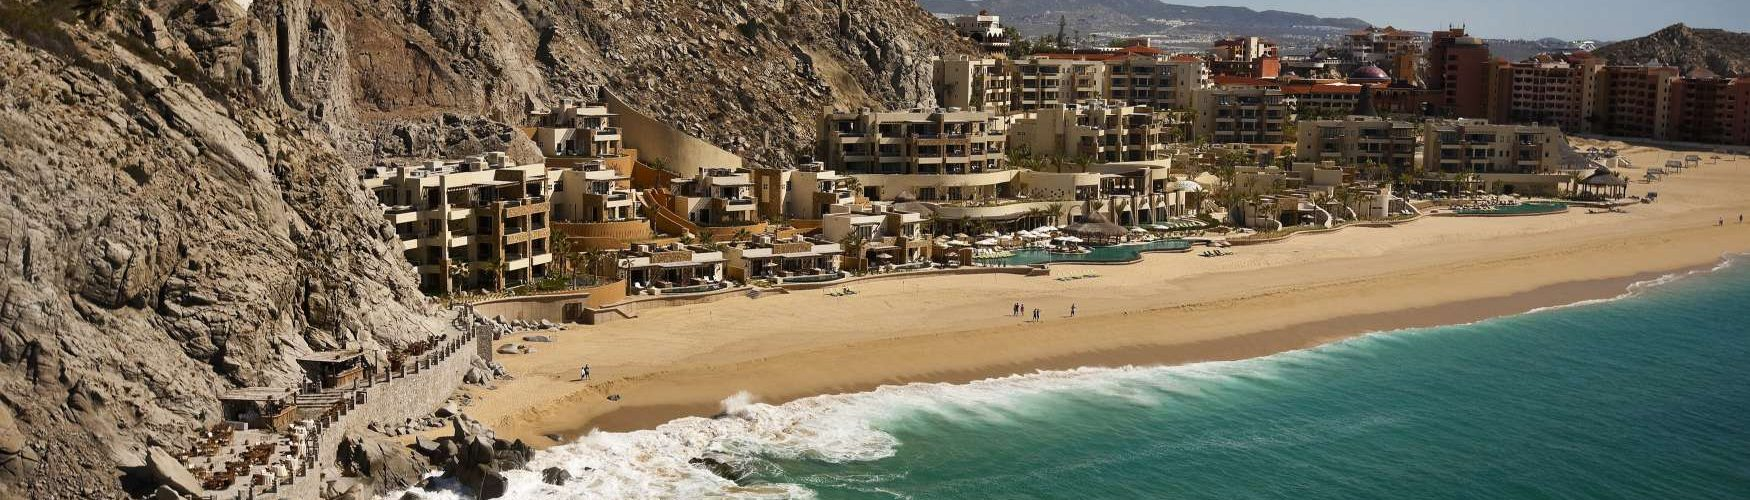 Amazing overview of The Resort at Pedregal